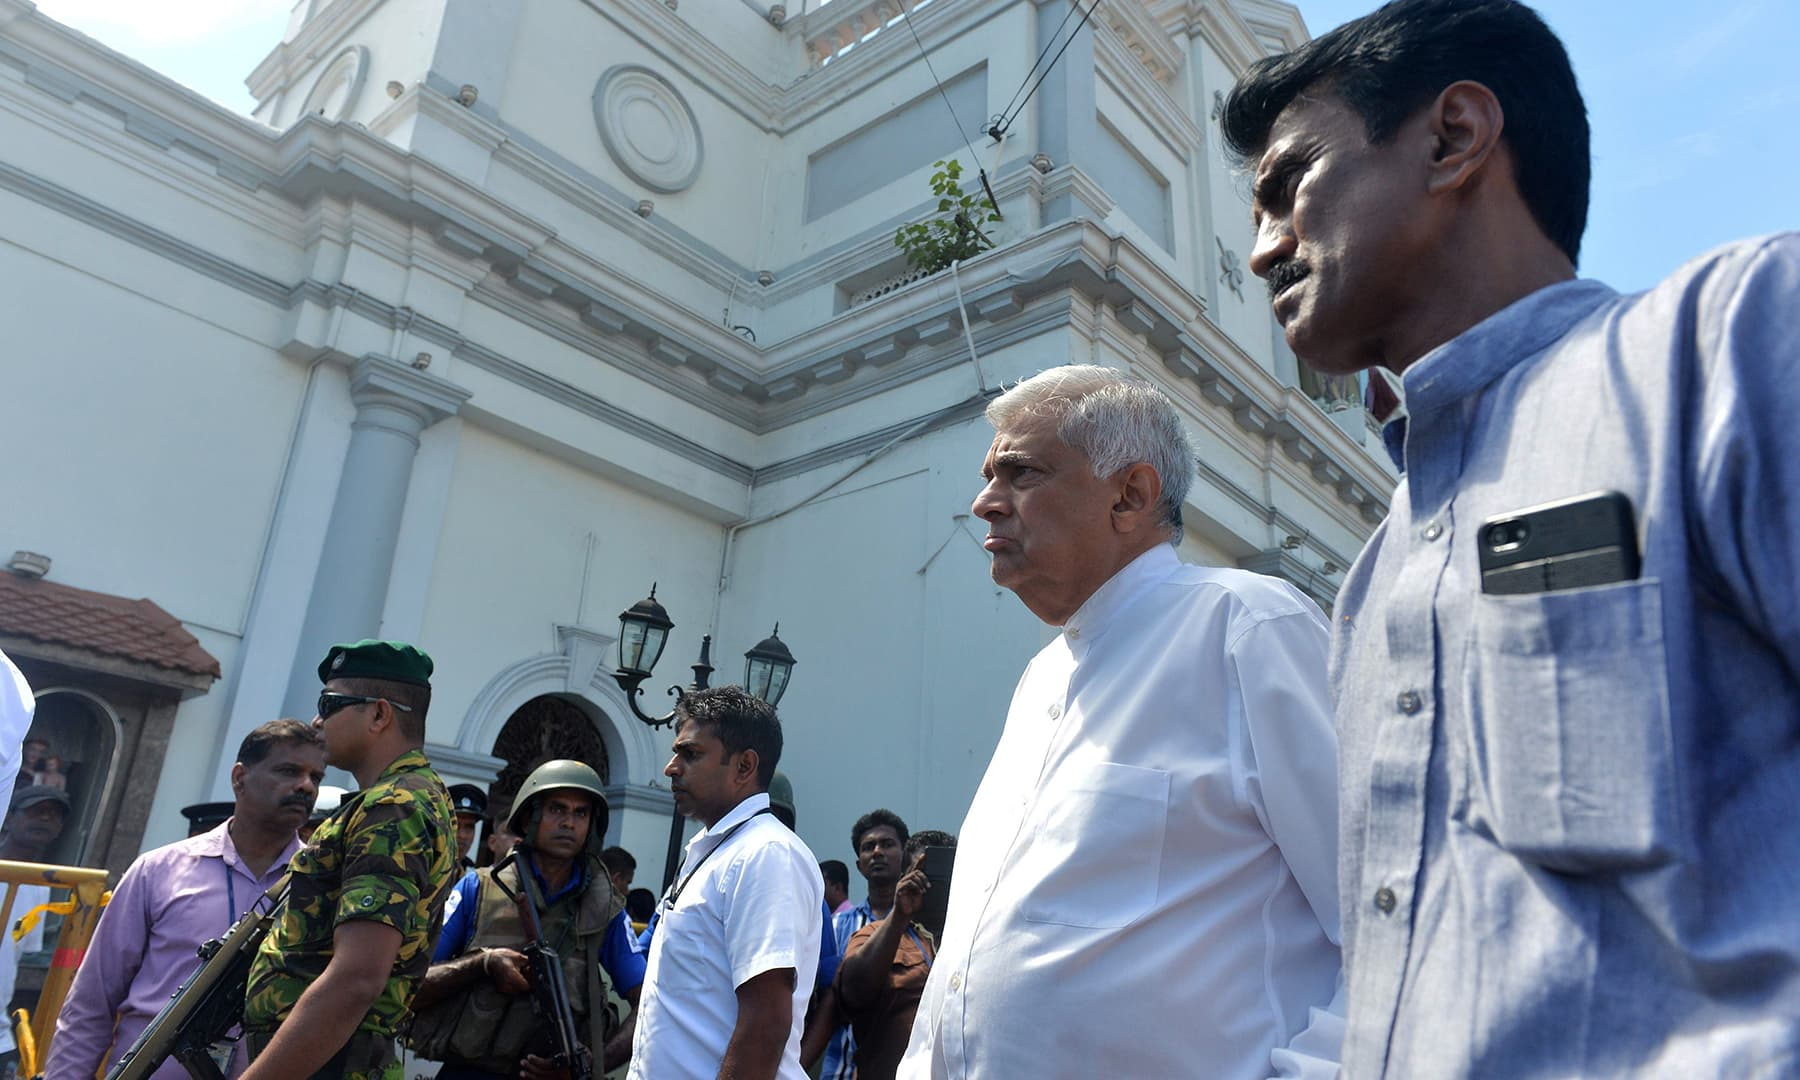 Sri Lankan Prime Minister Ranil Wickremasinghe (2nd R) arrives to visit the site of a bomb attack at St. Anthony's Shrine in Kochchikade in Colombo. — AFP